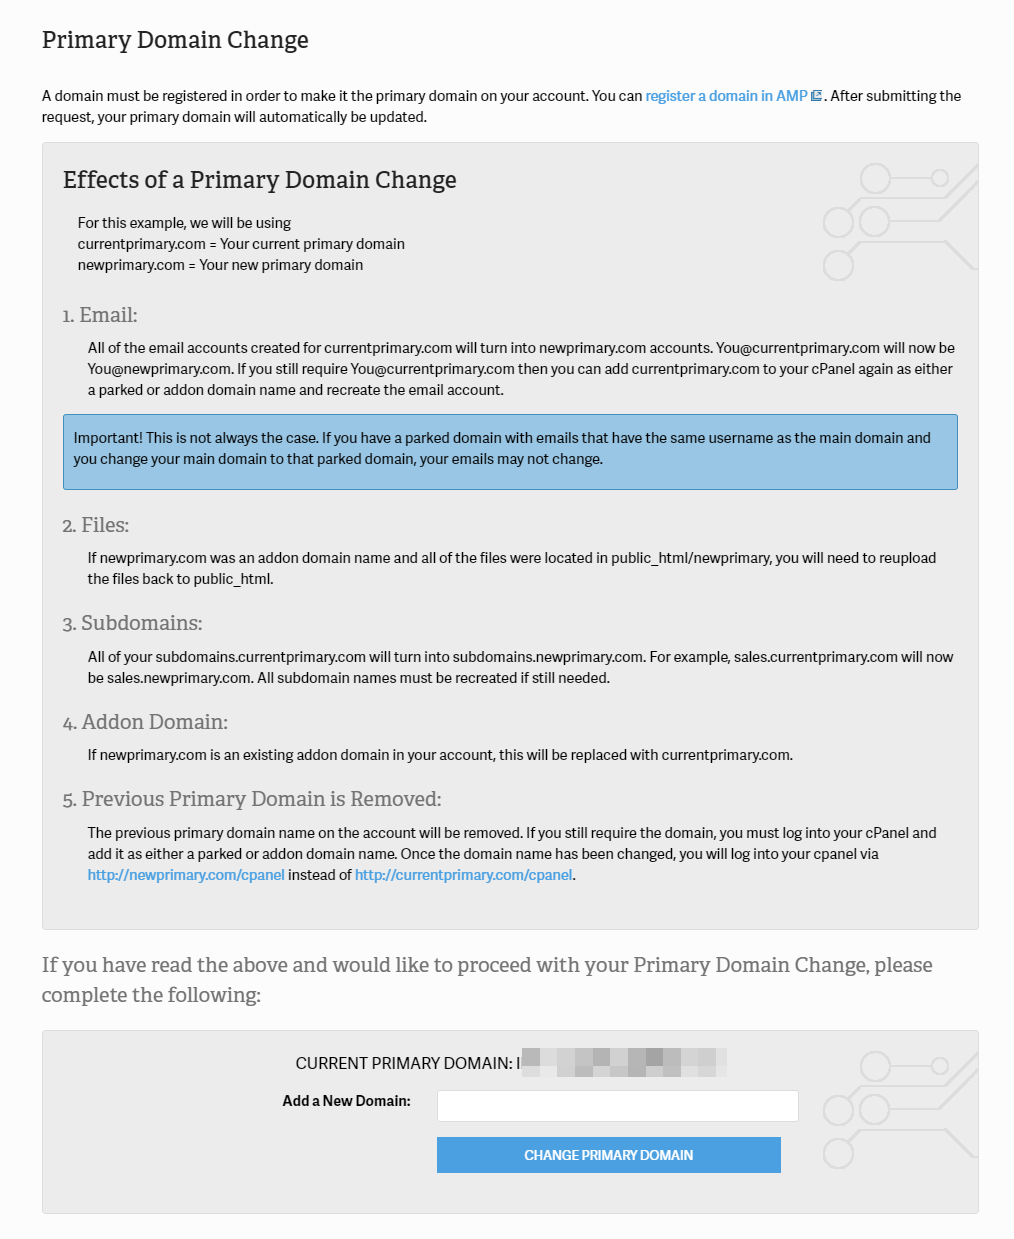 Change Primary Domain in cPanel Everything Affected